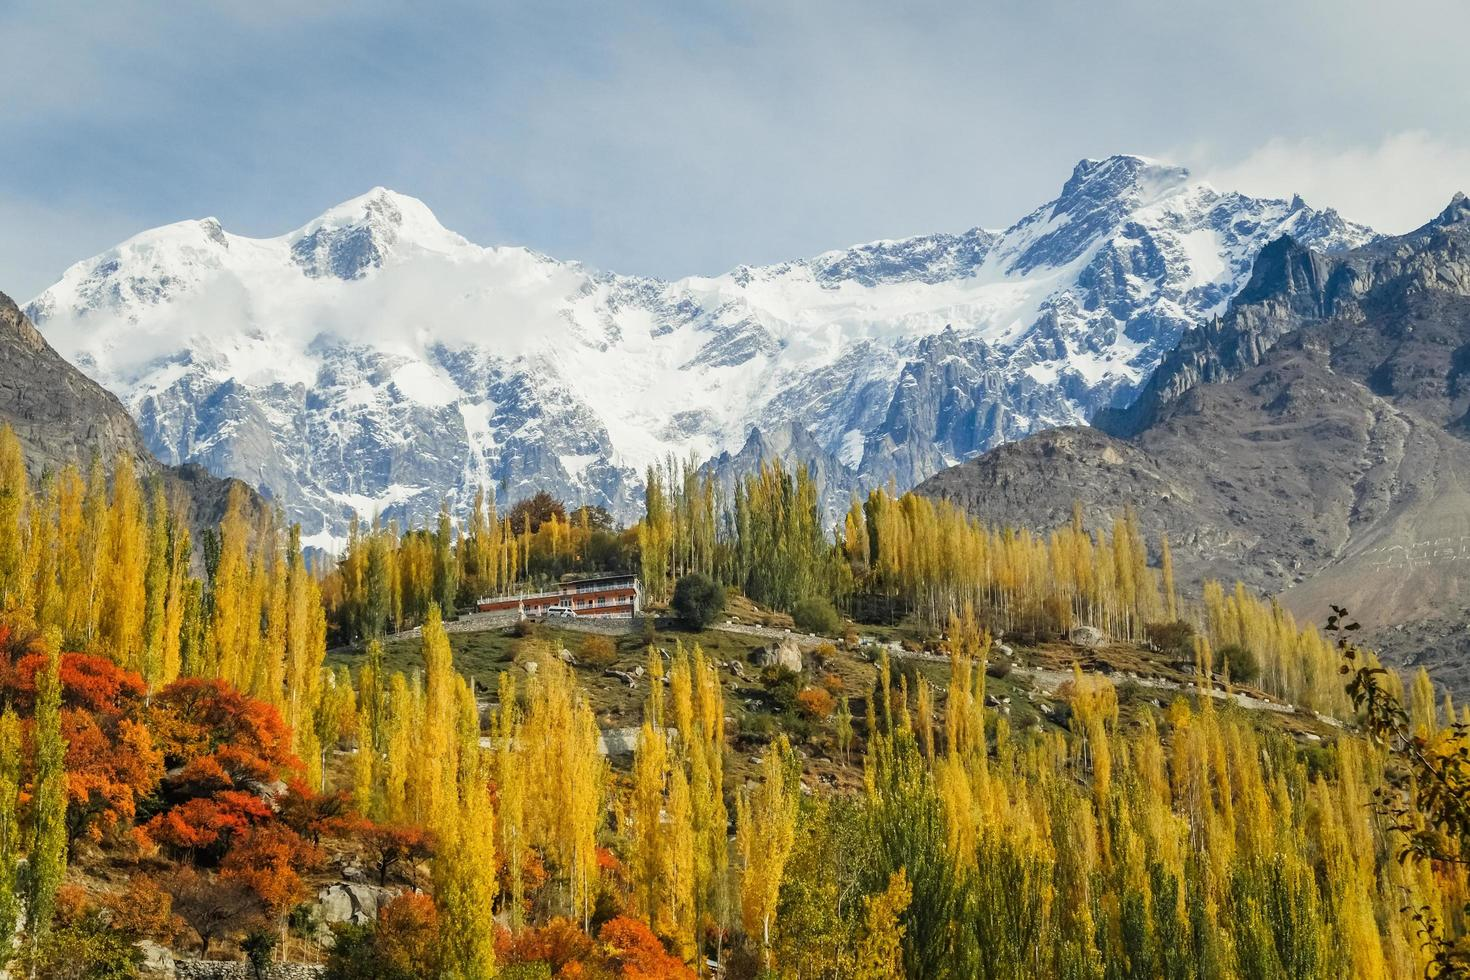 Autumn foliage in Hunza valley with snowcapped mountains  photo